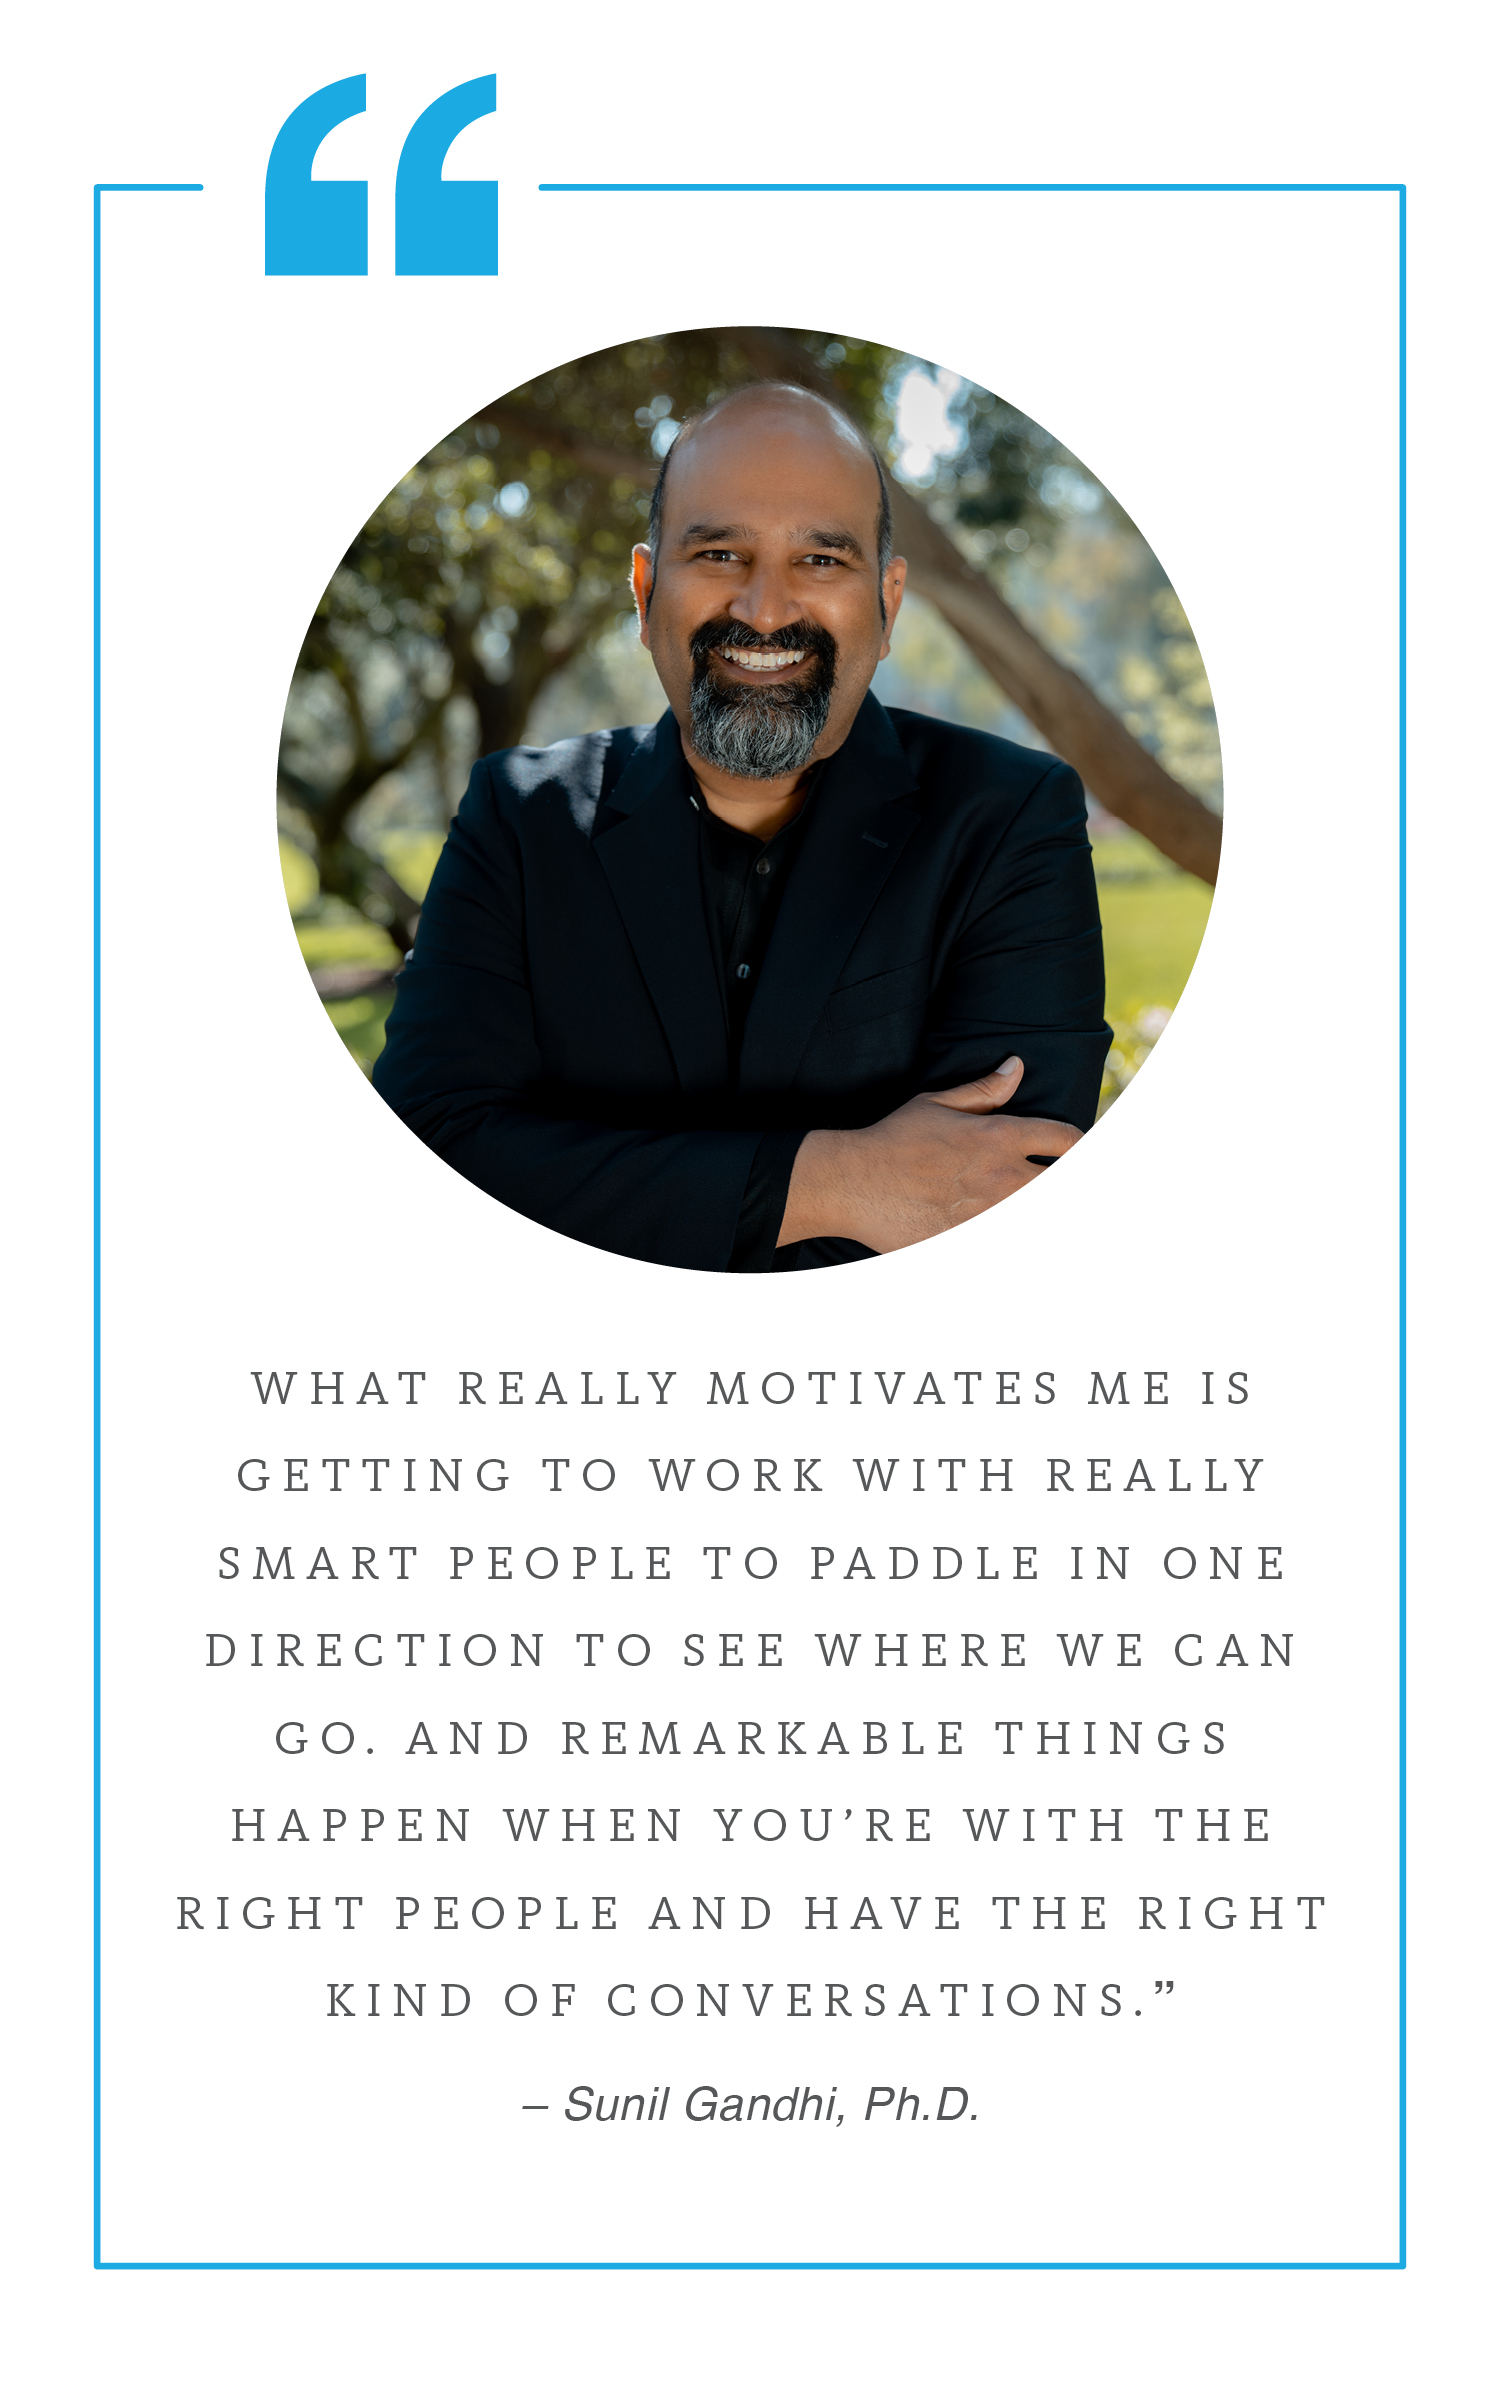 """Quote by Sunil Gandhi: """"What really motivates me is getting to work with really smart people to paddle in one direction to see where we can go. And remarkable things happen when you're with the right people and have the right kind of conversations."""""""